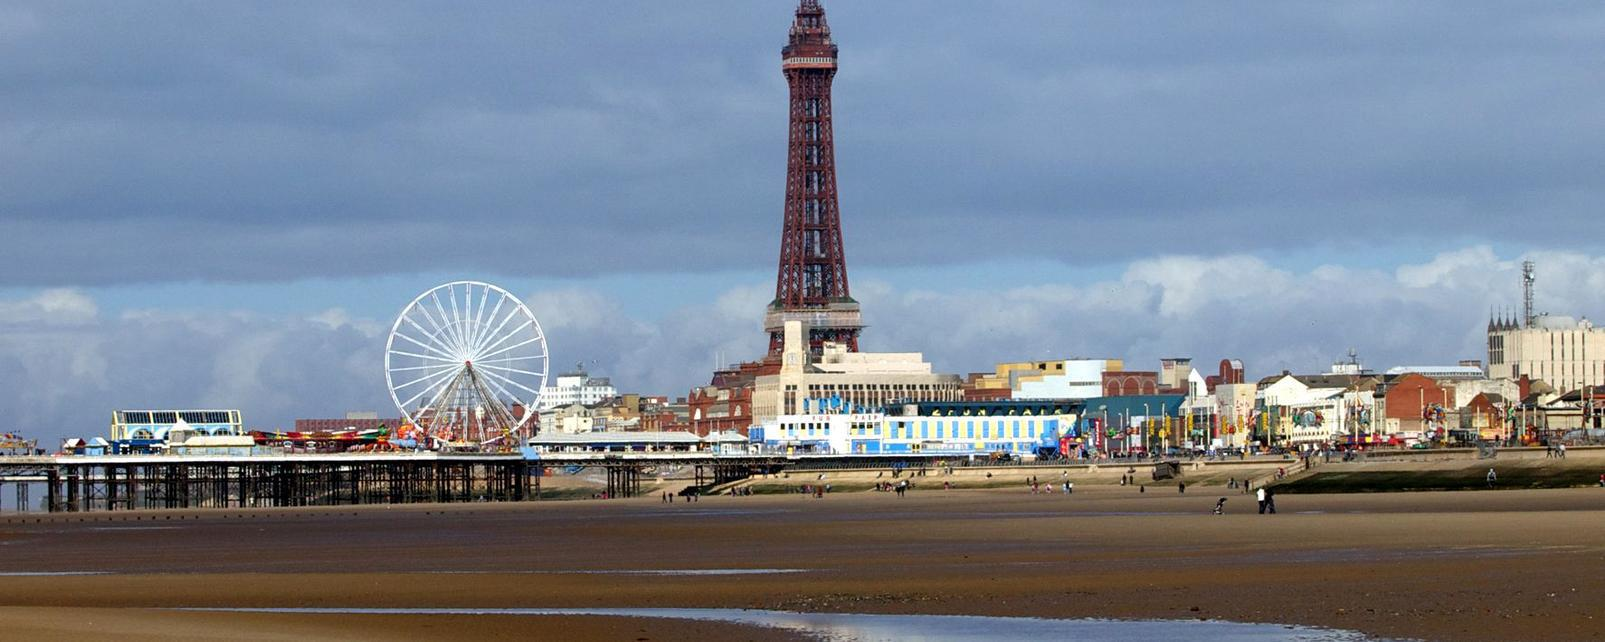 Blackpool Travel Guide